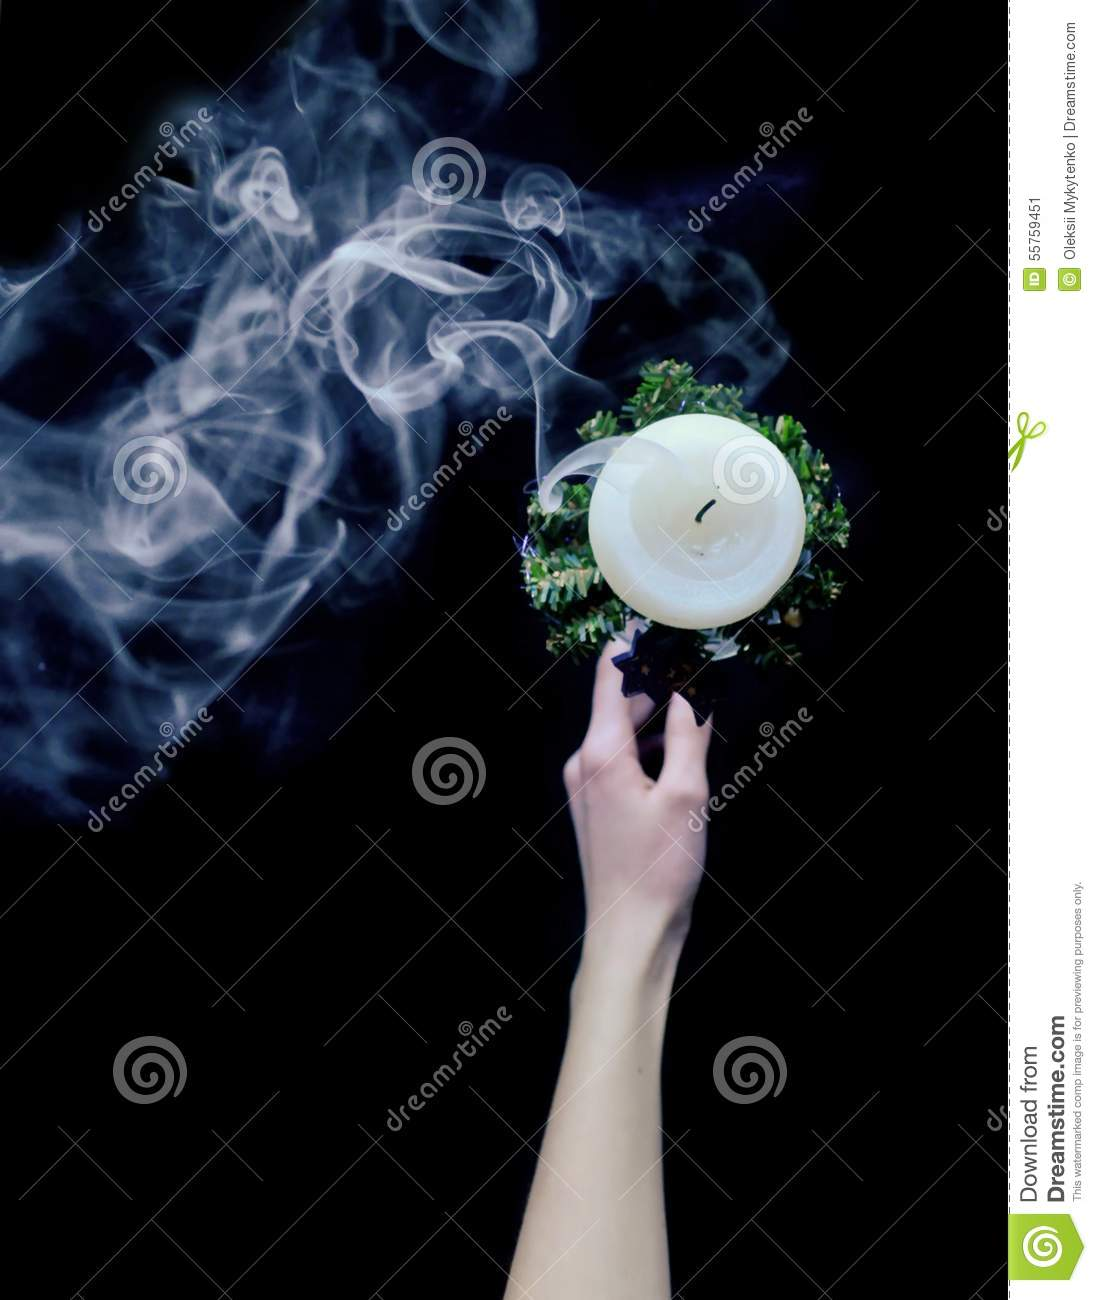 Smoke from candles